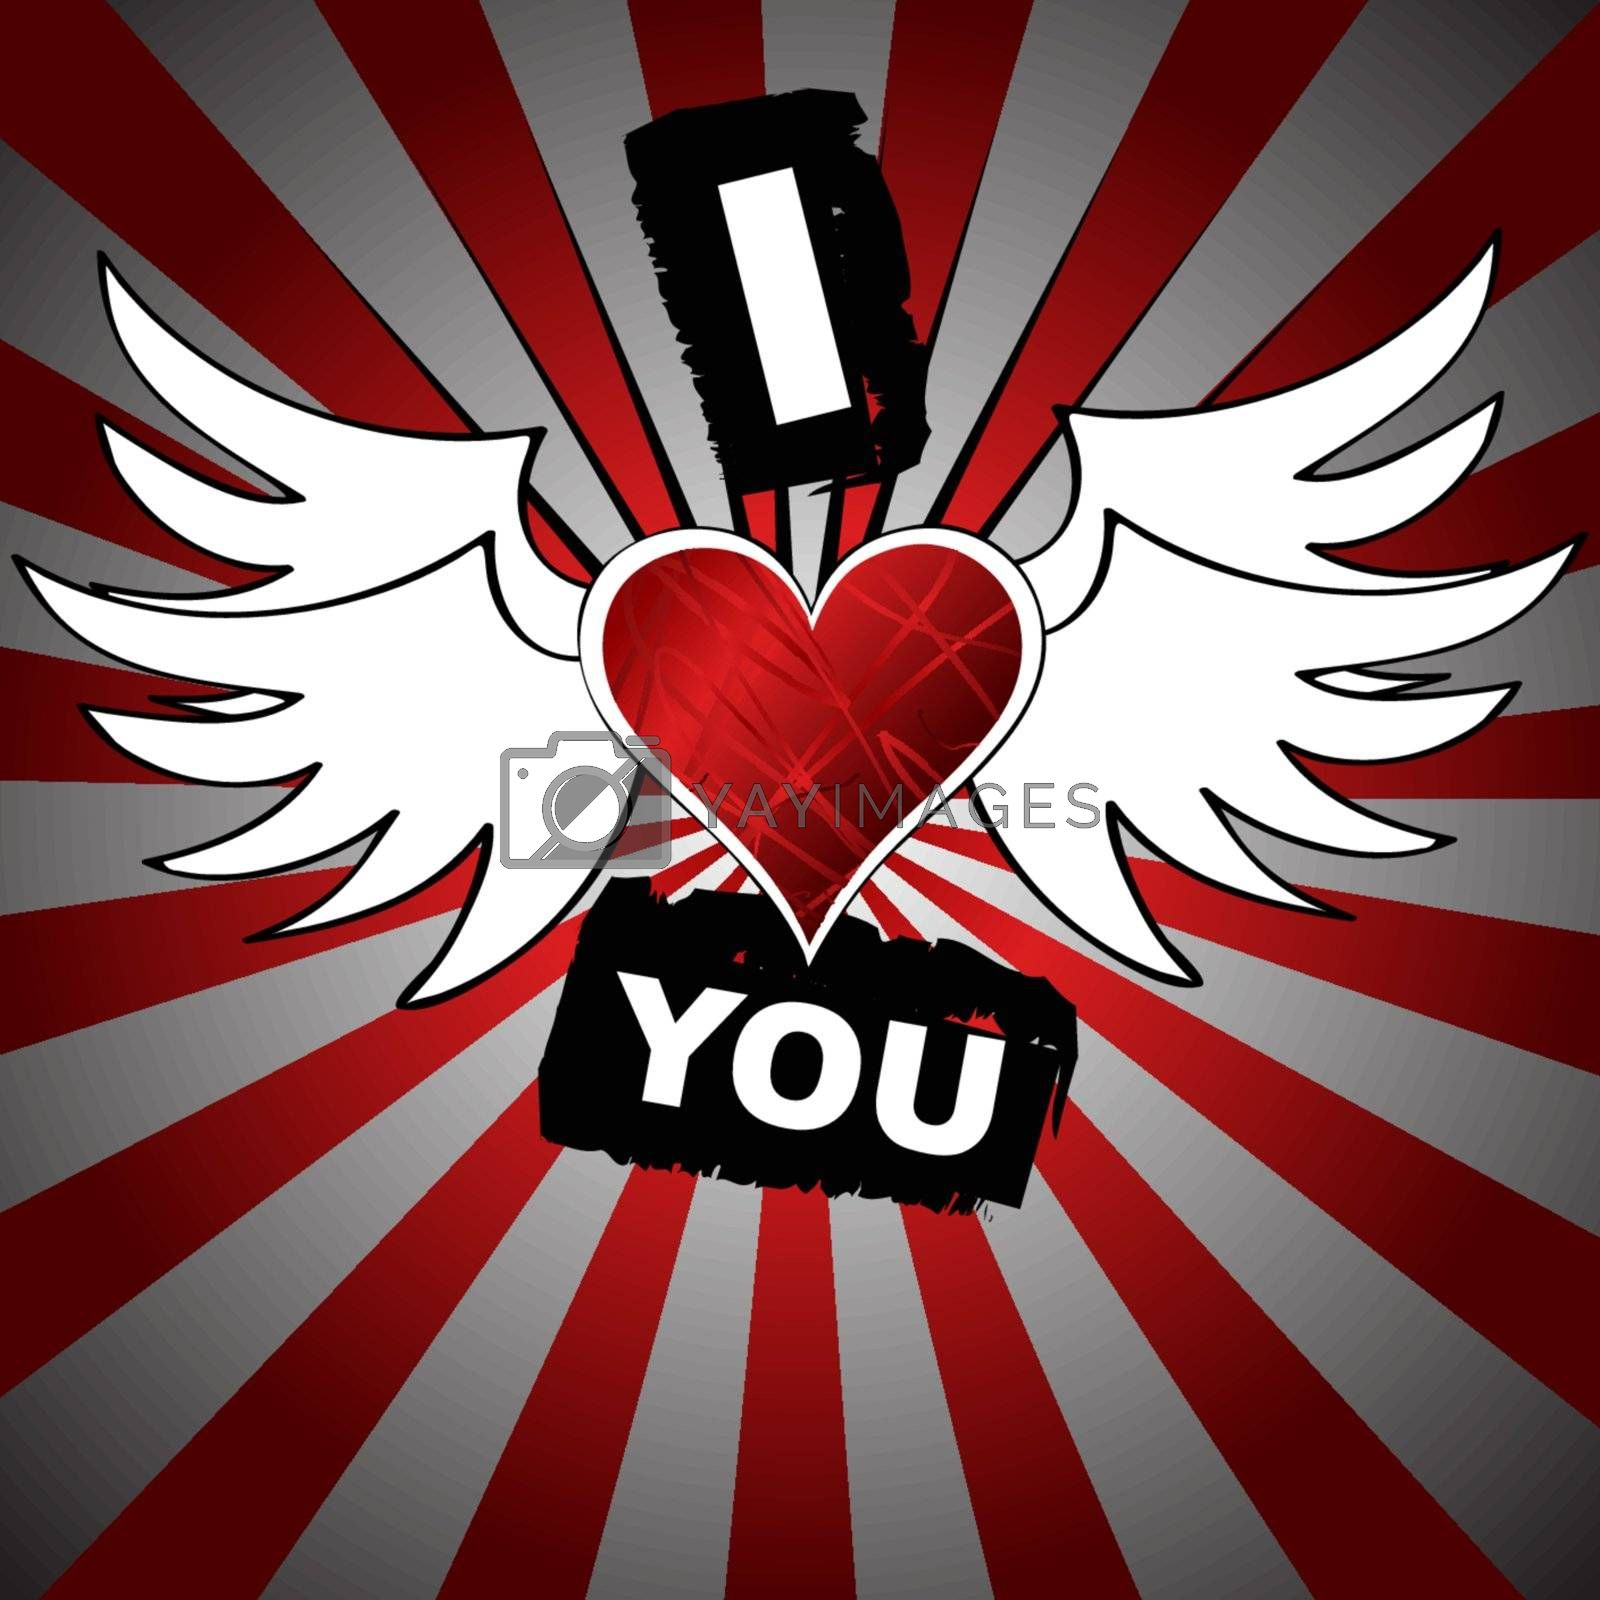 Grunge vector Illustration of heart with wings that says I love you